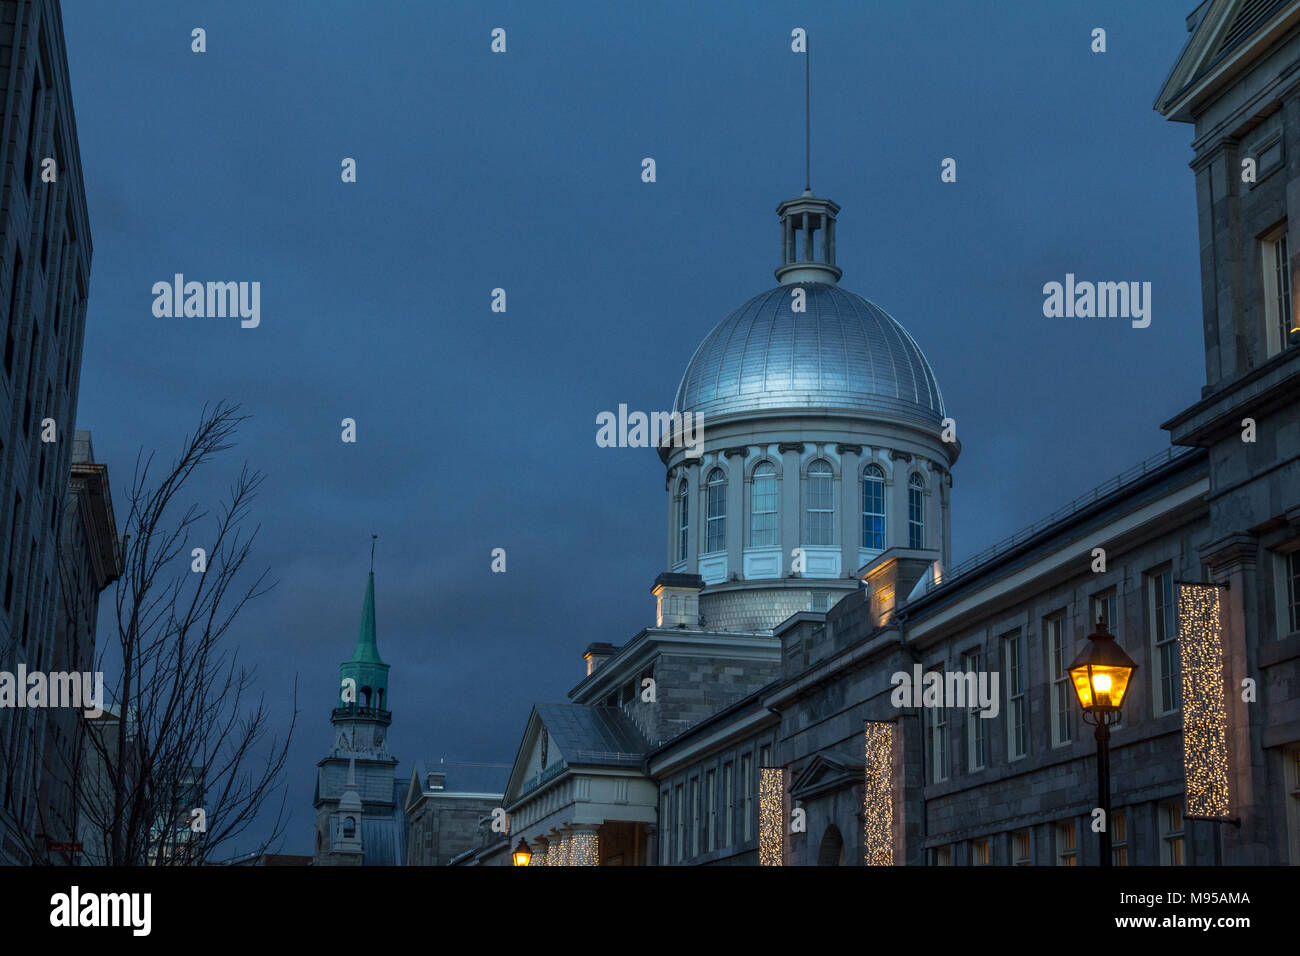 Marche Bonsecours in Montreal, Quebec, Canada, during a winter evening, surrounded by other historical buildings. Bonsecours Market is one of the main - Stock Image